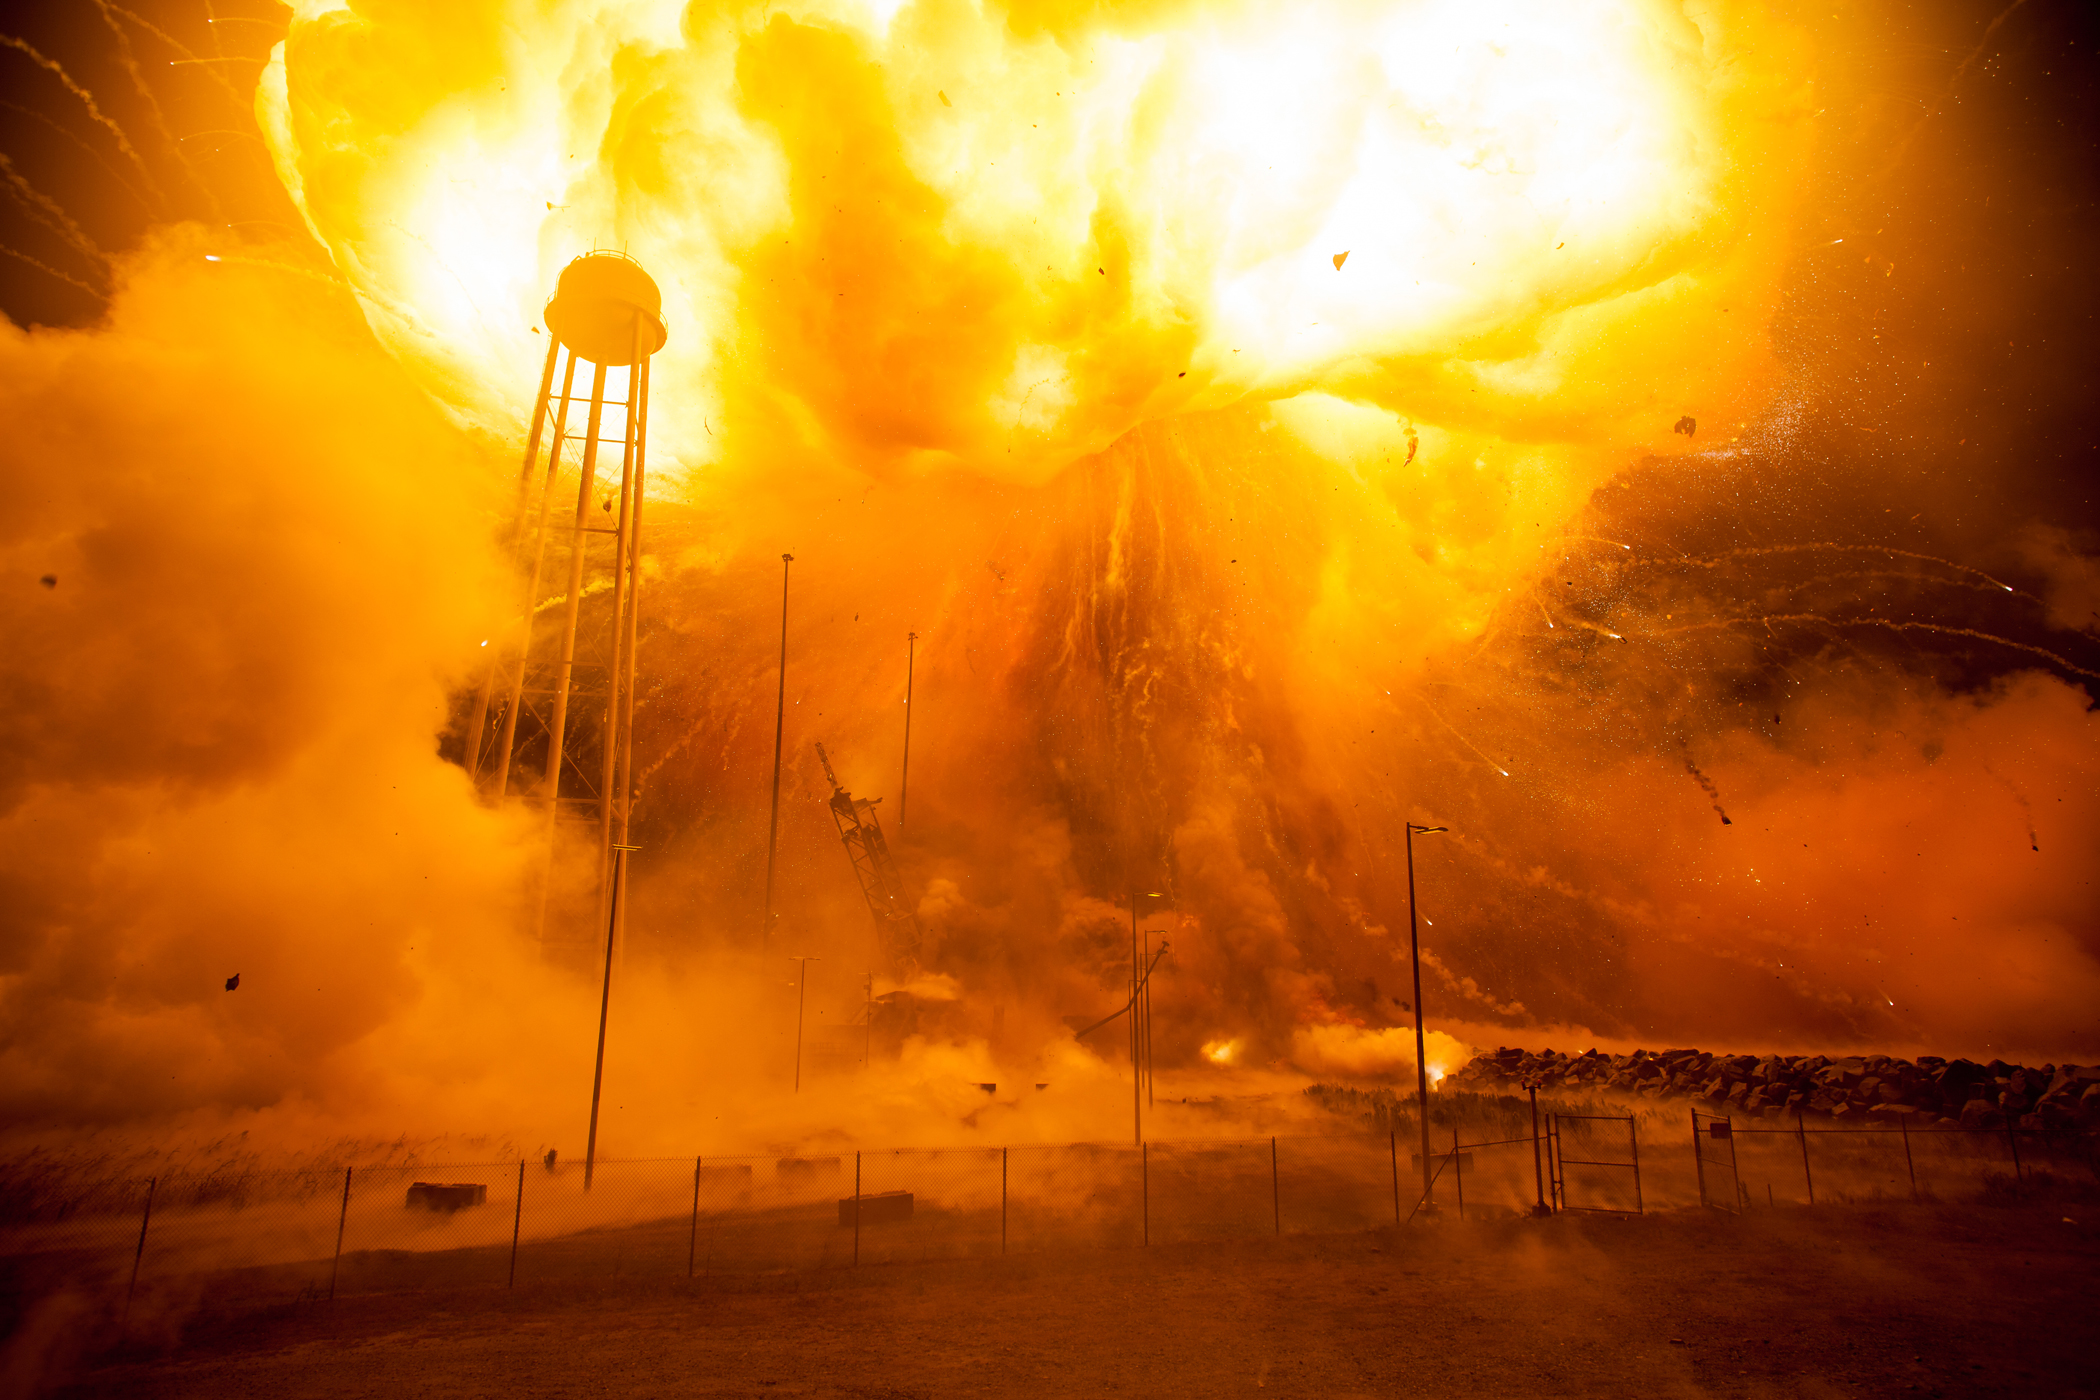 The Orbital ATK Antares rocket, with a Cygnus spacecraft onboard, suffered a catastrophic explosion moments after launch on Oct. 28, 2014, at NASA's Wallops Flight Facility in Virginia.  The Cygnus spacecraft was filled with supplies slated for the International Space Station.  The never before seen photographs were released by NASA this year.